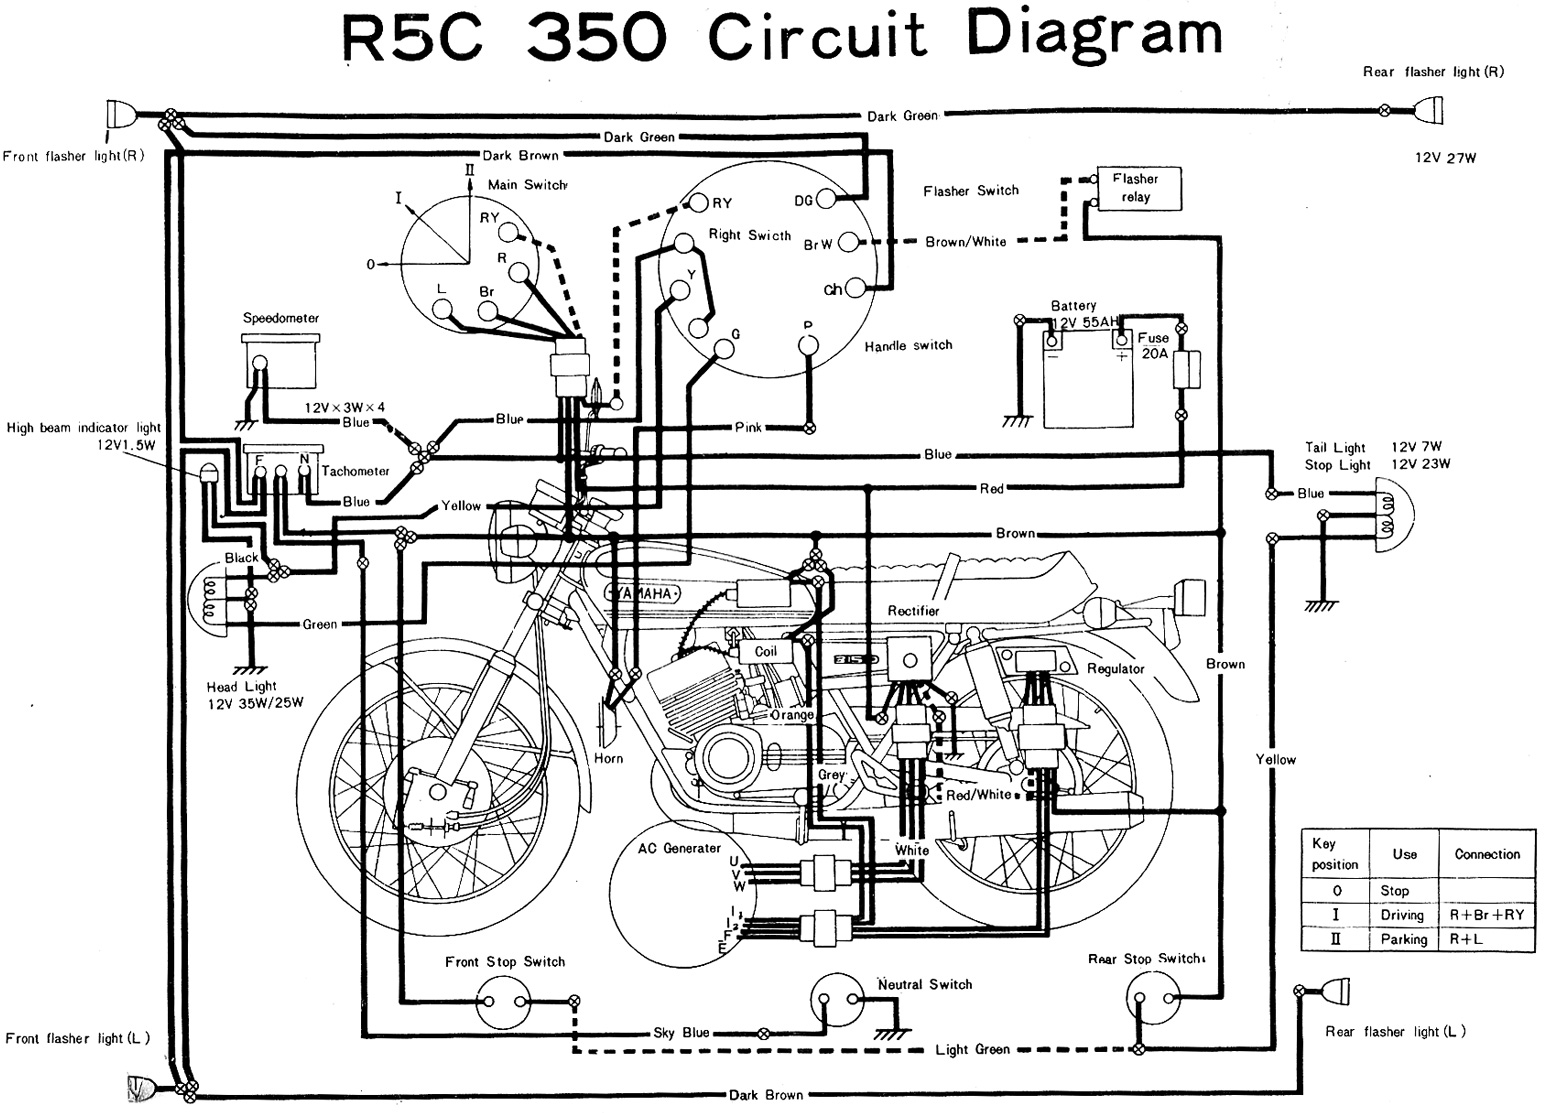 Yamaha R5C 350 Electrical Wiring Diagram1 motorcycle wiring diagrams motorcycle wiring diagram at nearapp.co